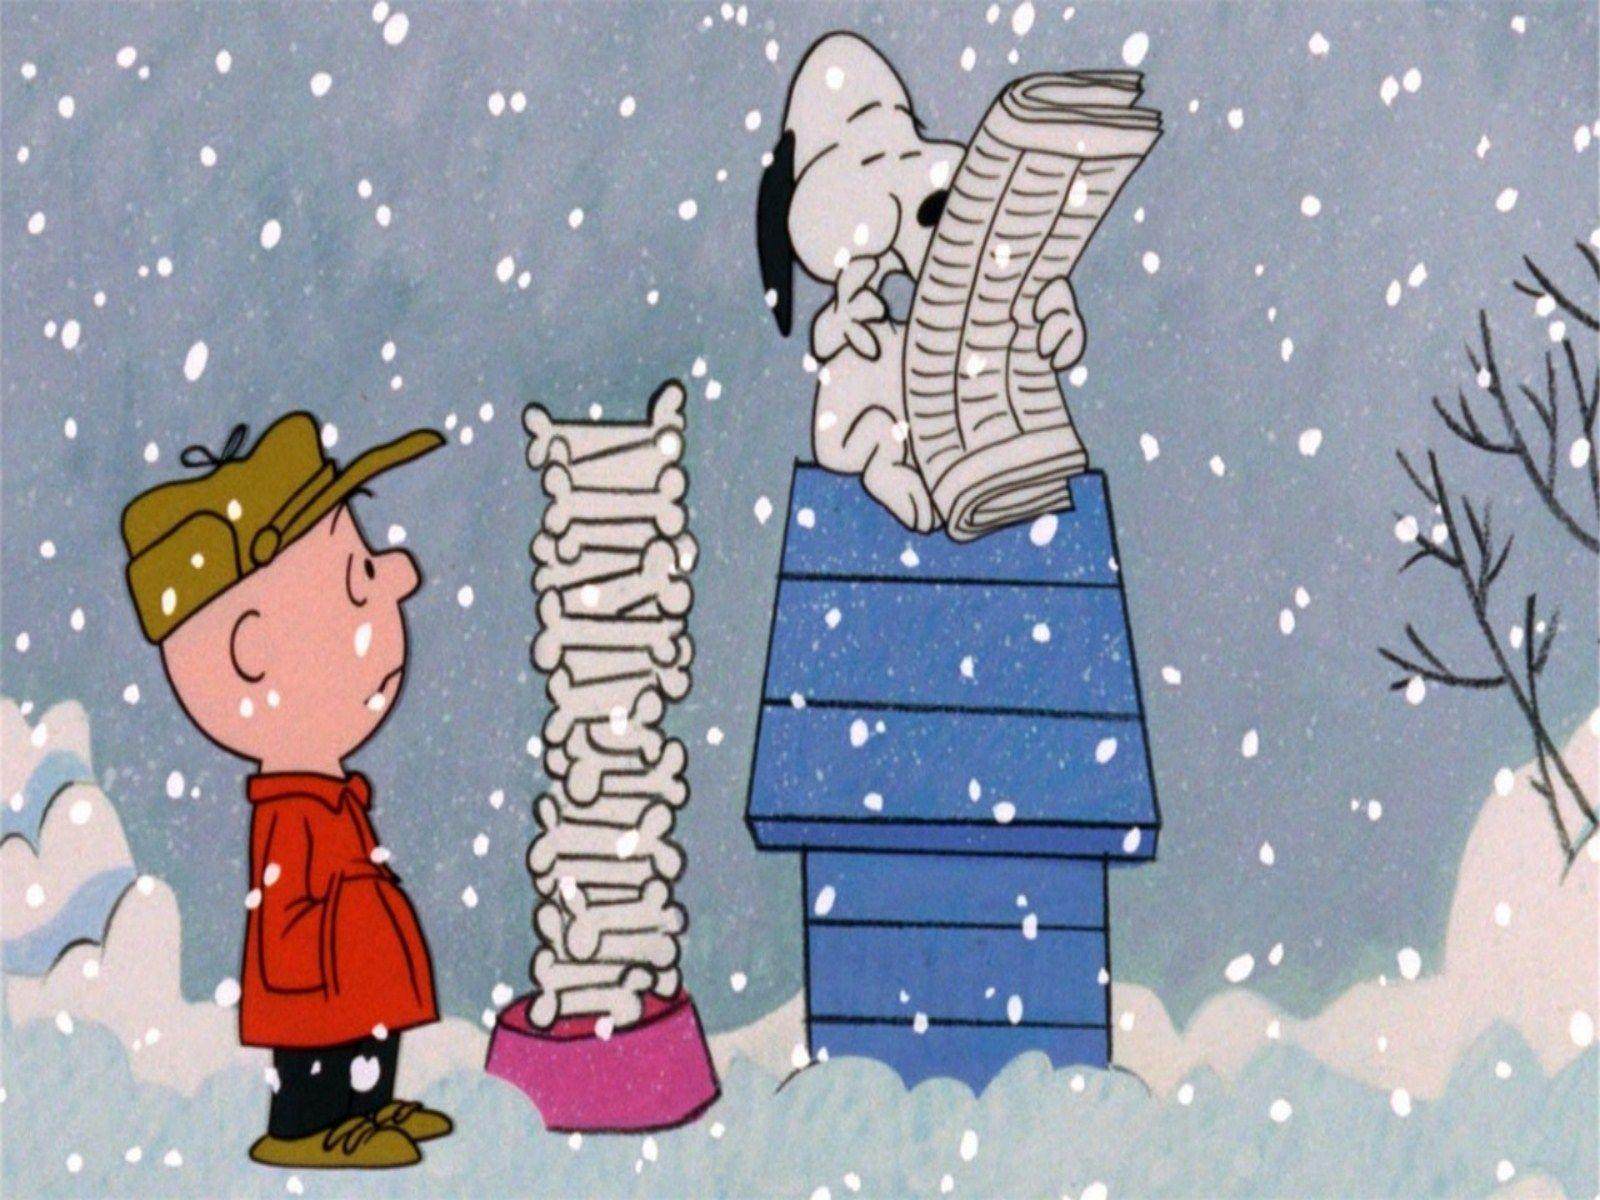 Image For > Charlie Brown Christmas Desktop Backgrounds Free